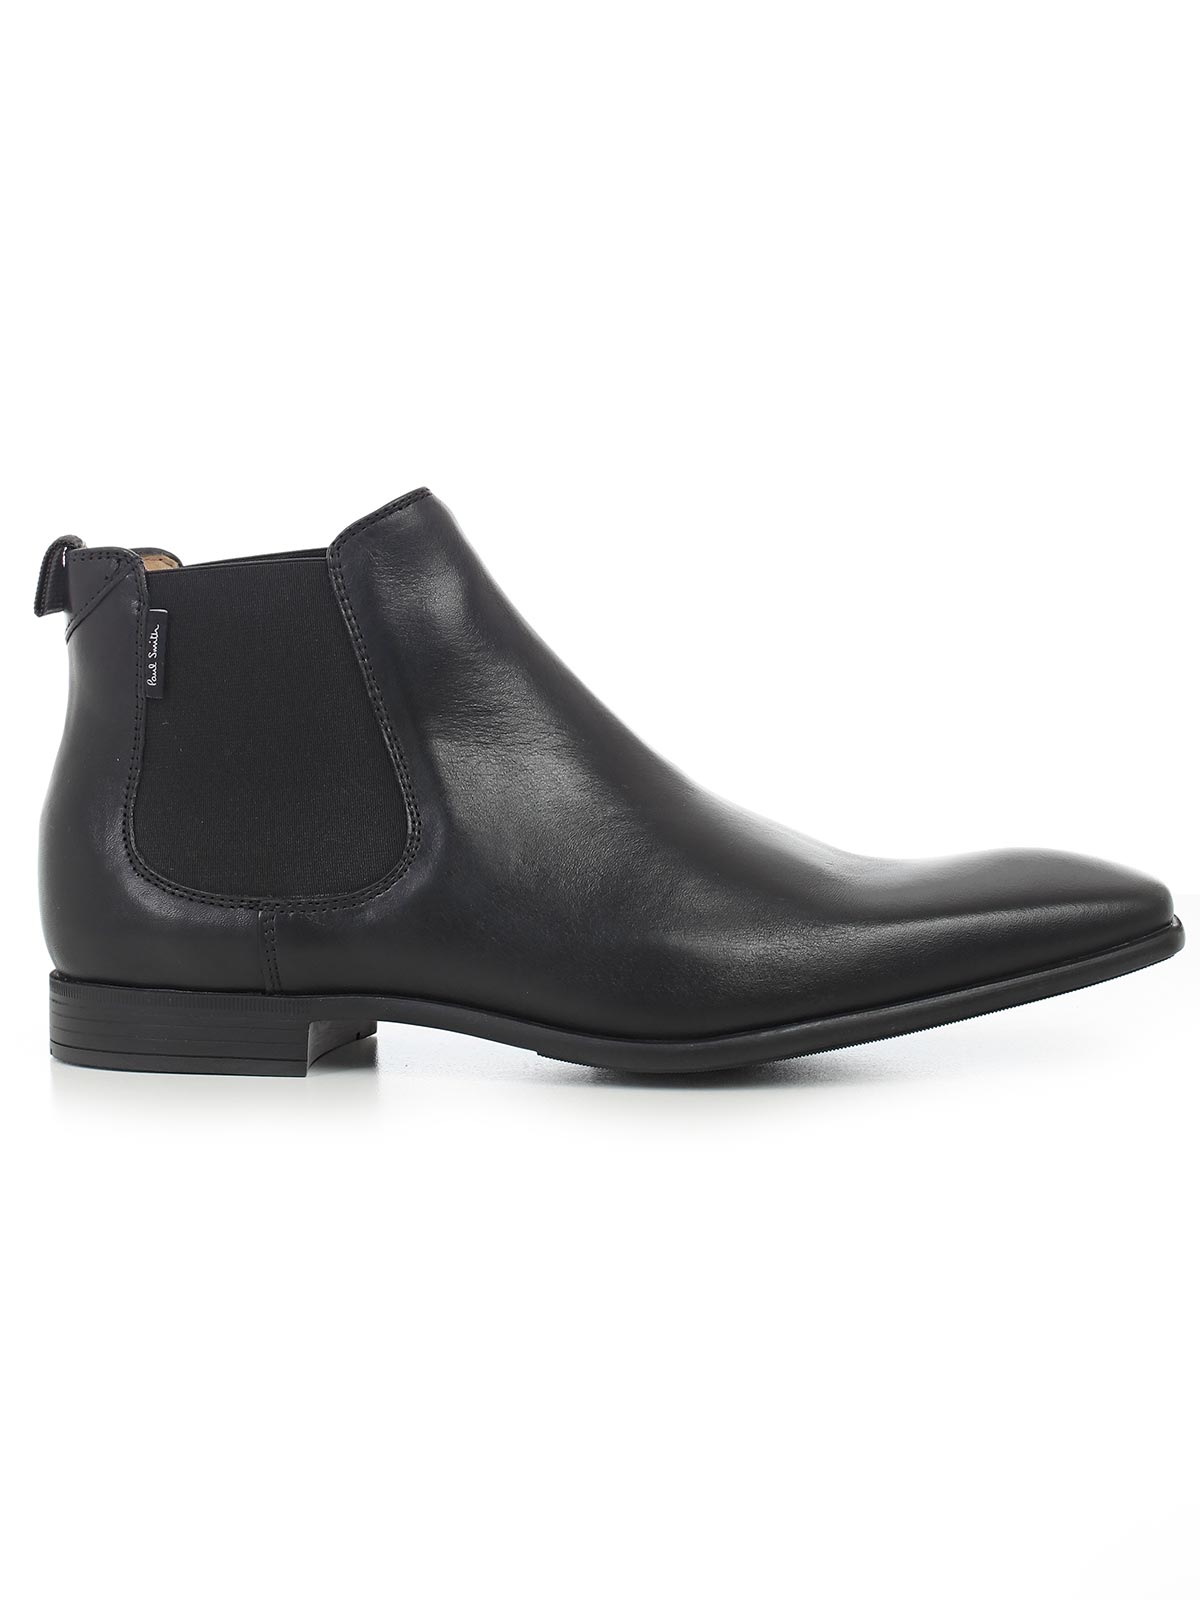 Picture of Ps Paul Smith Boots